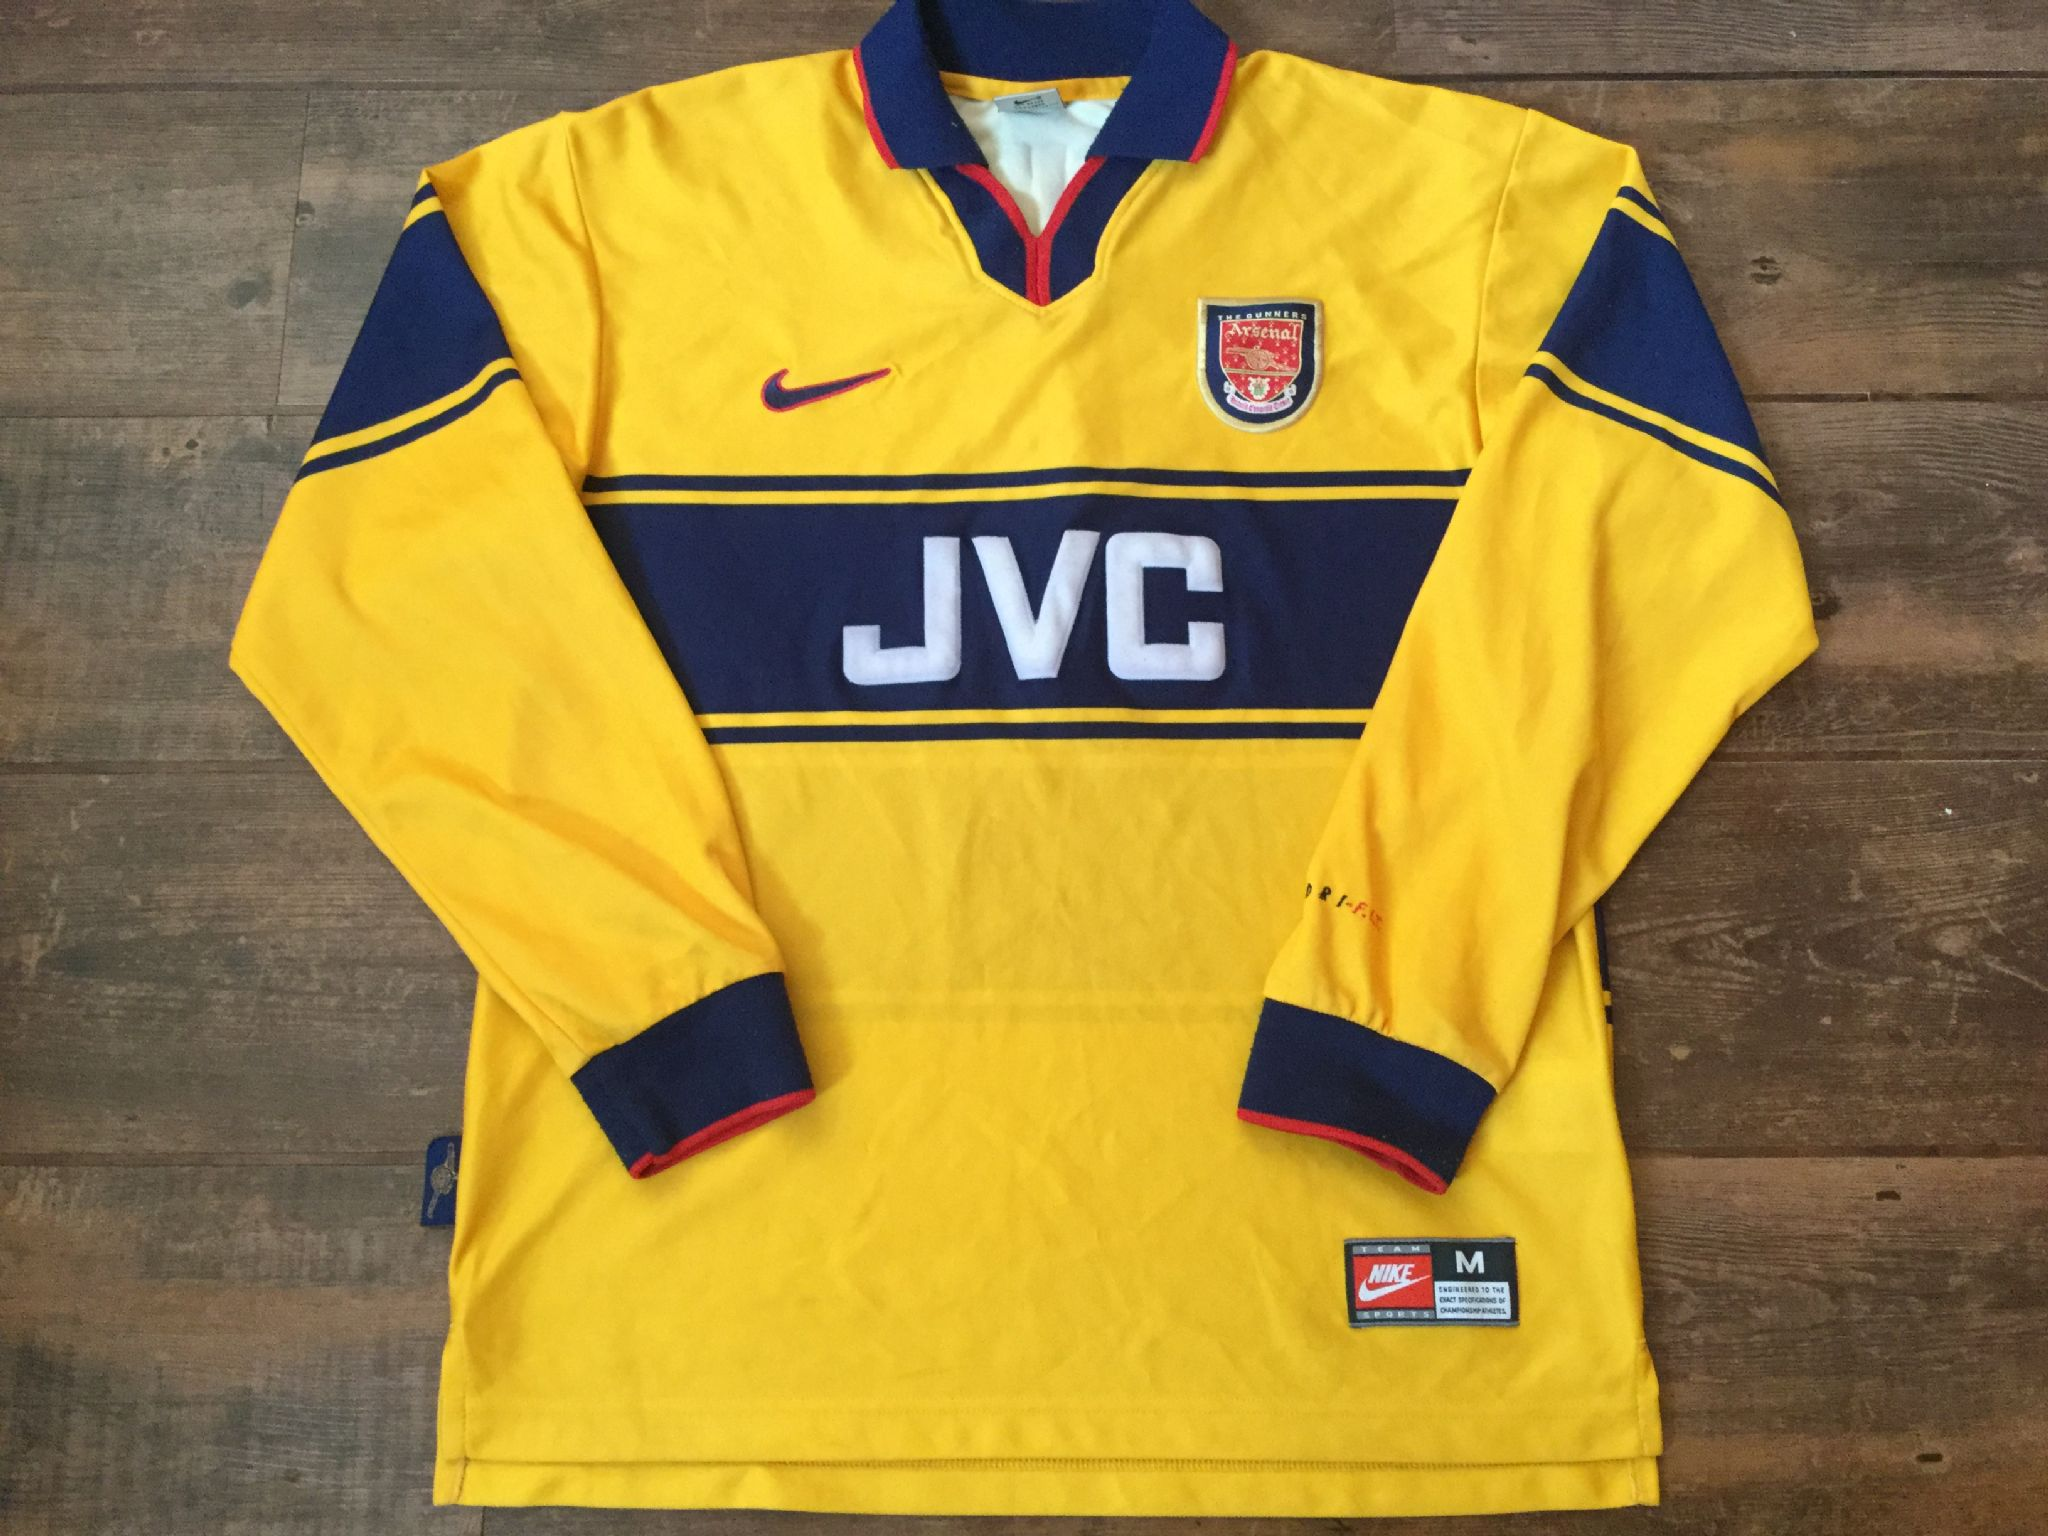 2a86899569a Arsenal Retro Shirt Jvc – EDGE Engineering and Consulting Limited